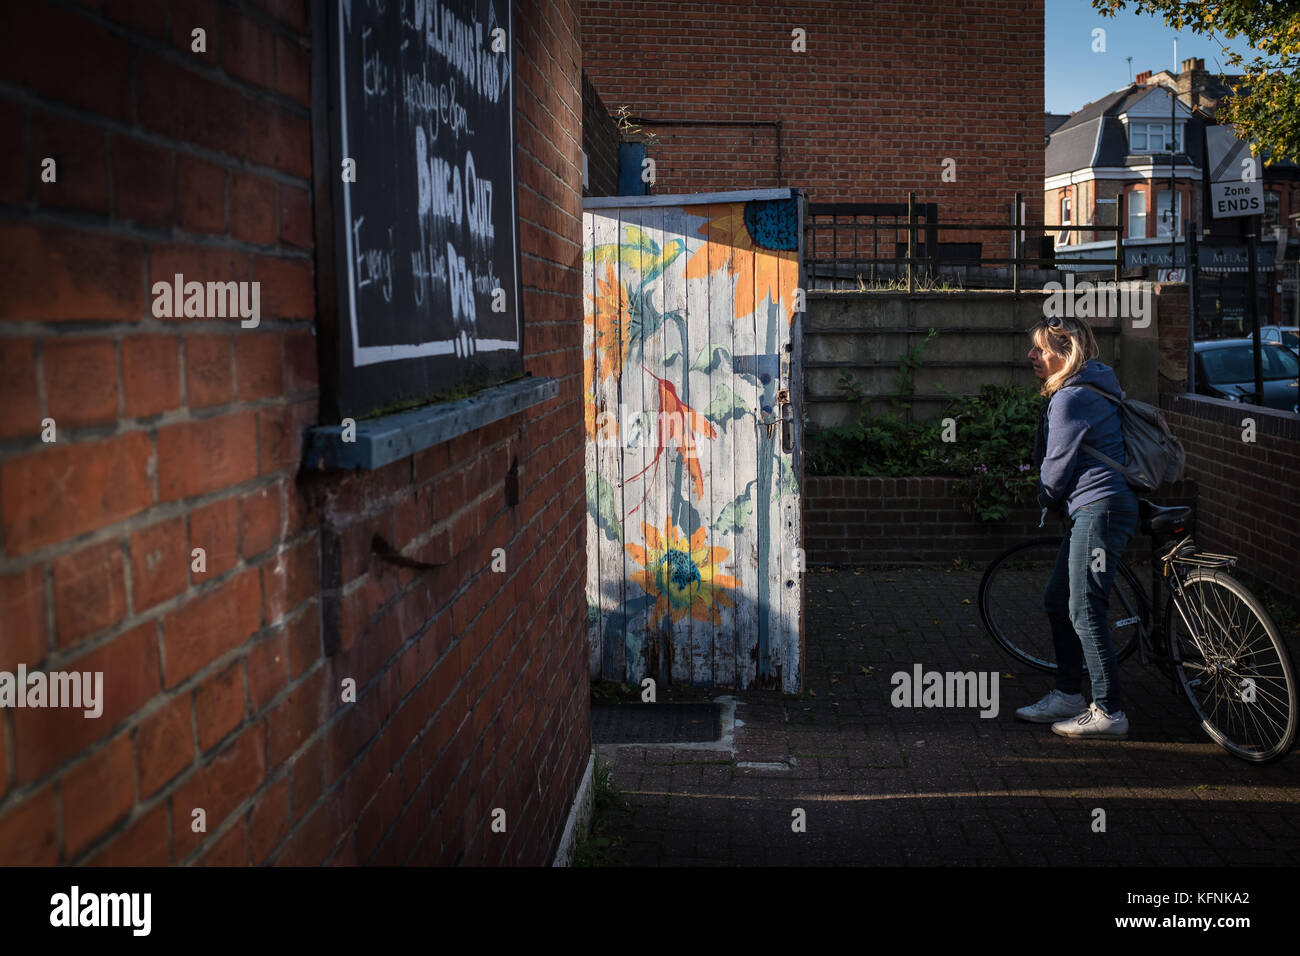 Looking through the door - Stock Image